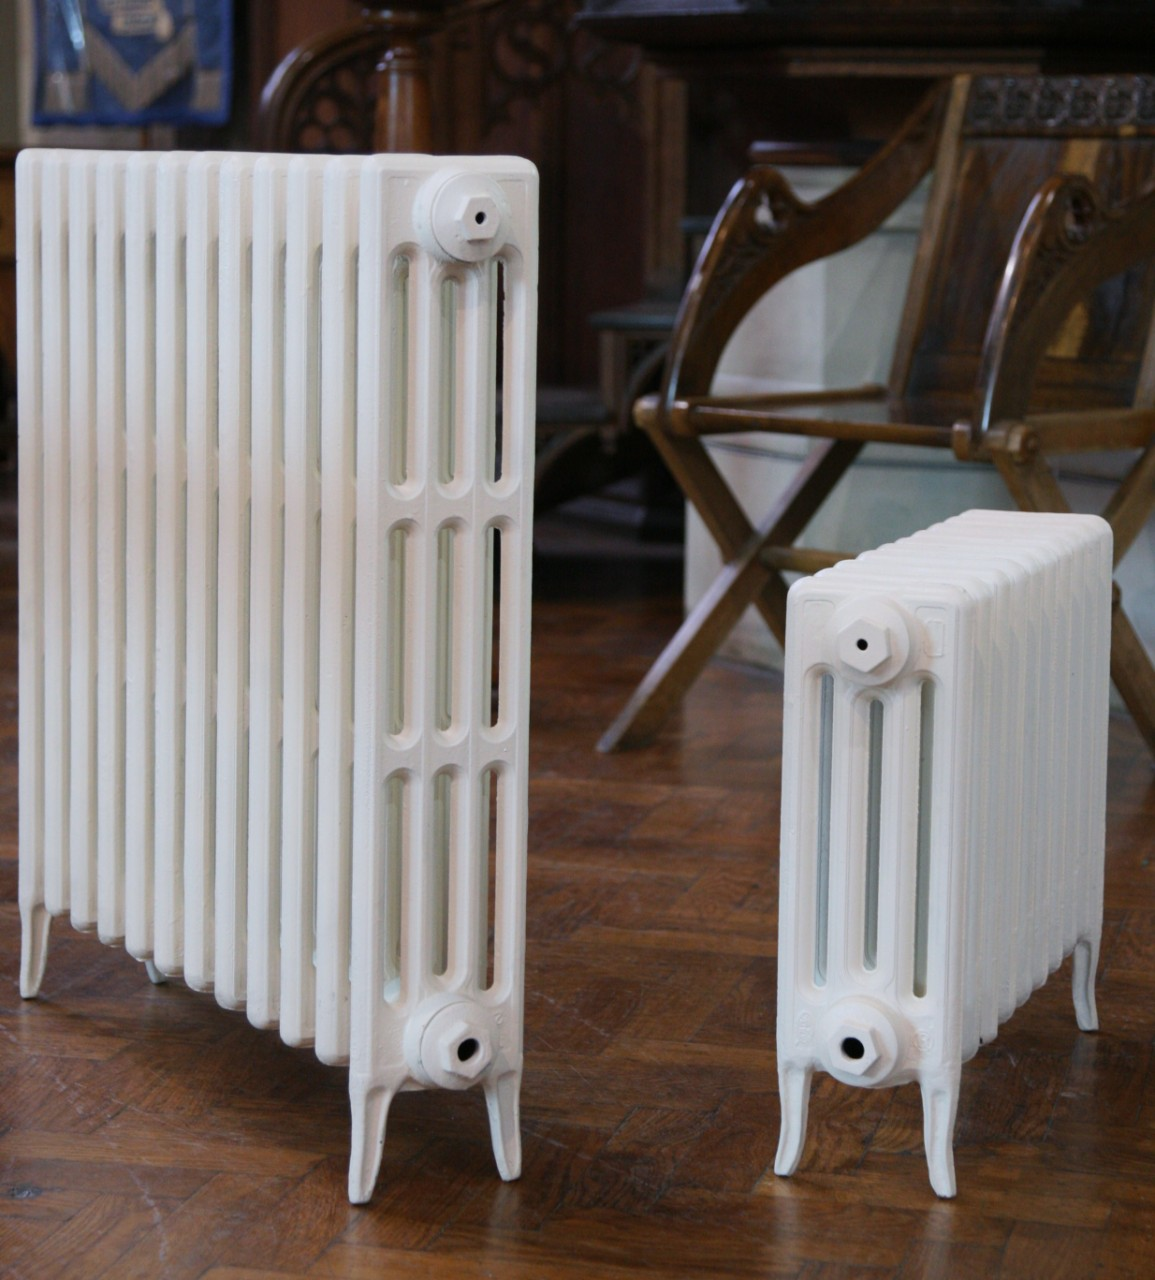 760mm neo classic 4 column cast iron radiators now on for Classic house voices